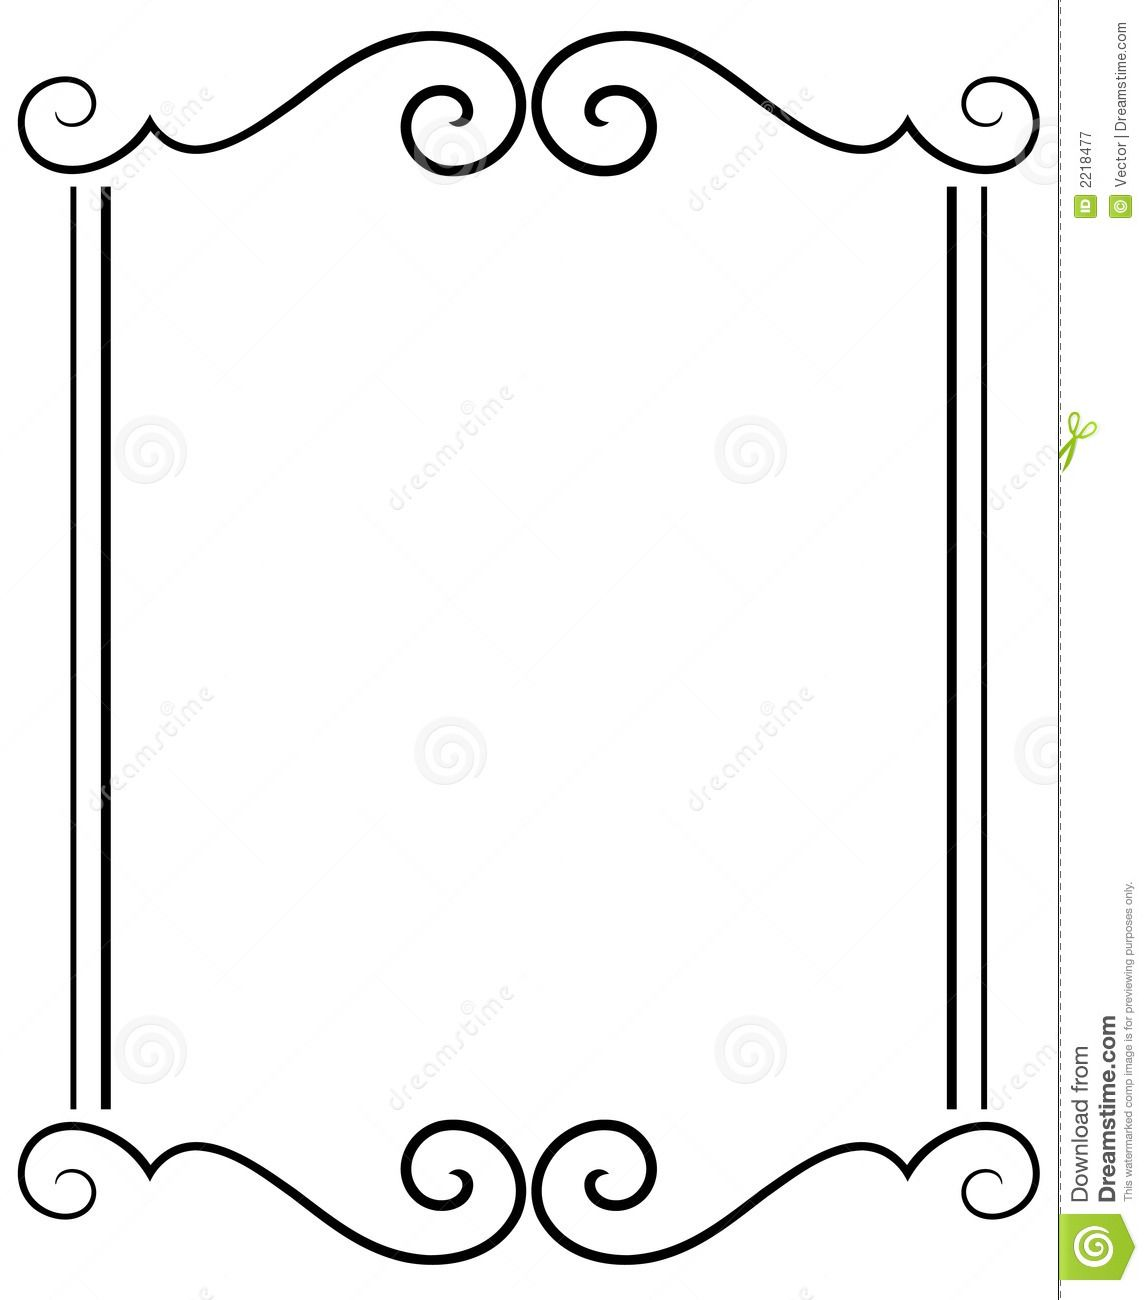 simple-frame-designs-decorative-frame-2218477.jpg (1148×1300 ...